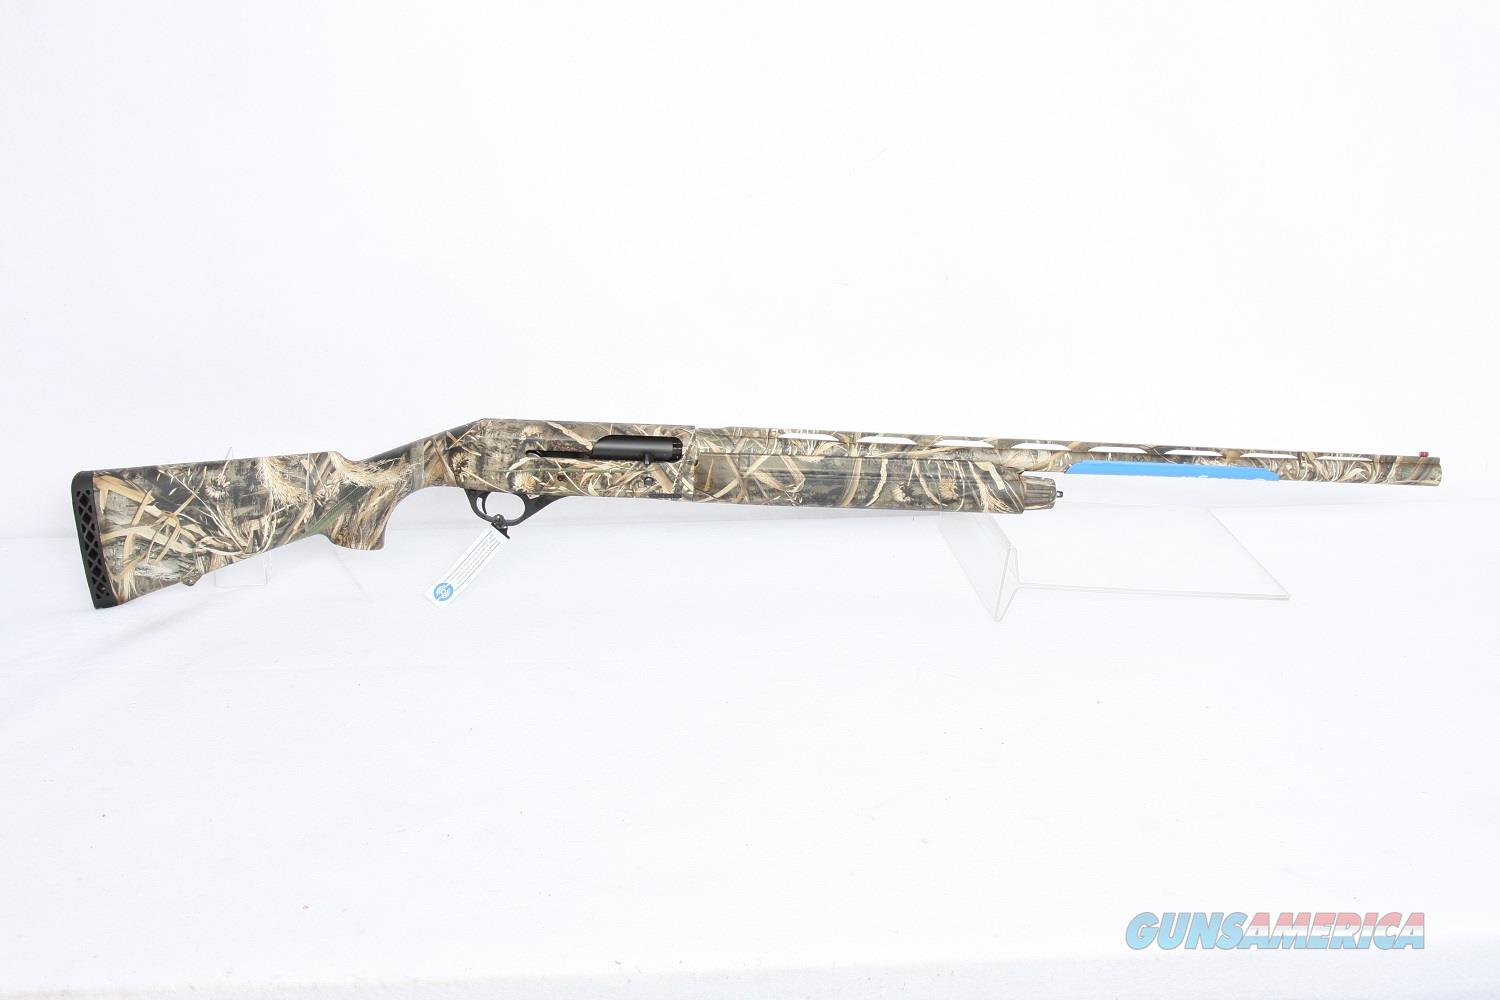 Stoeger 3000 12g Max5 28in 3in  Guns > Shotguns > Stoeger Shotguns